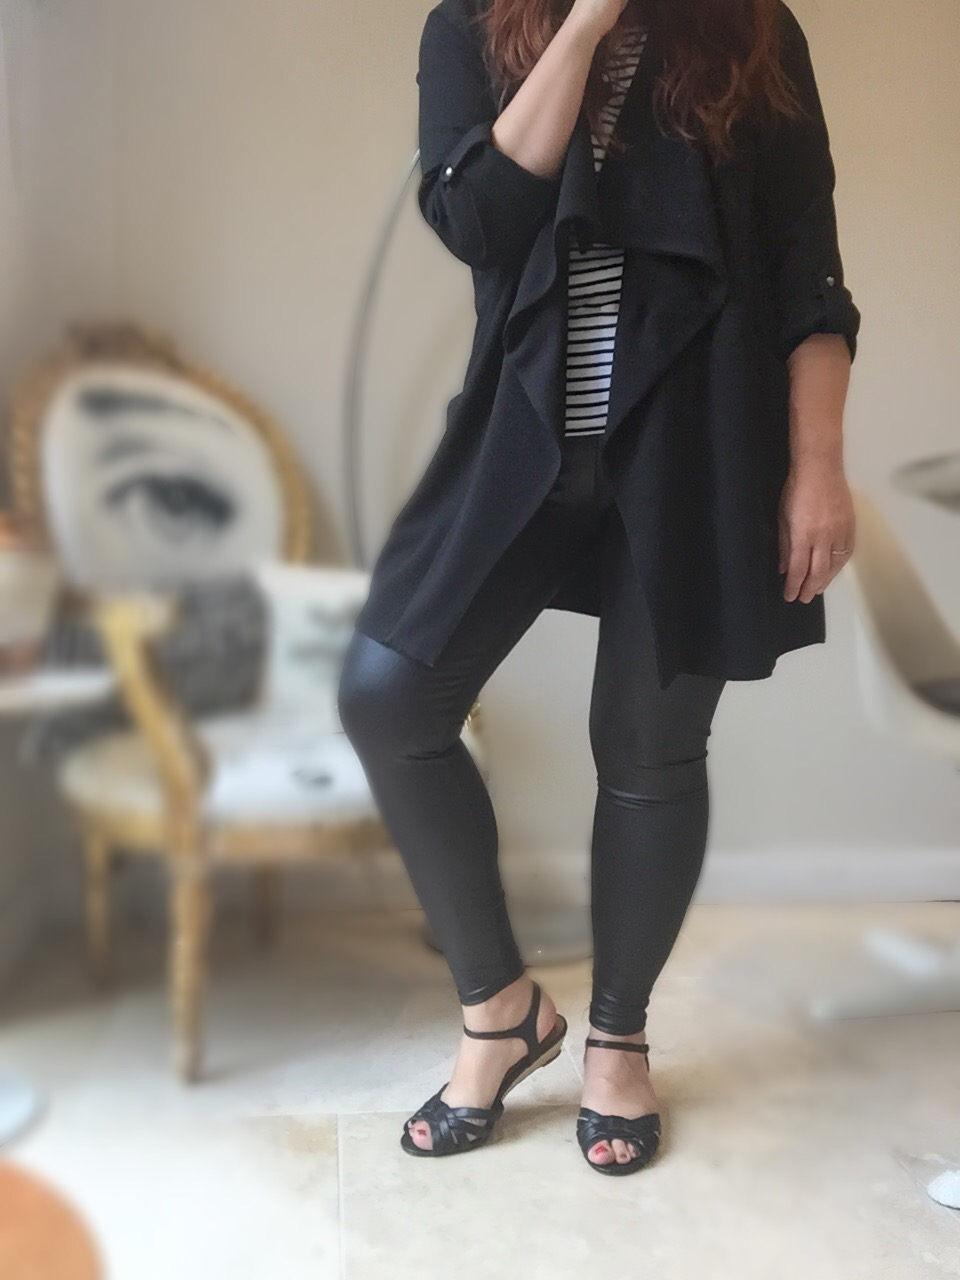 MandCo waterfall jacket & wet look leggings #ootd via Always a Blue Sky Girl blog